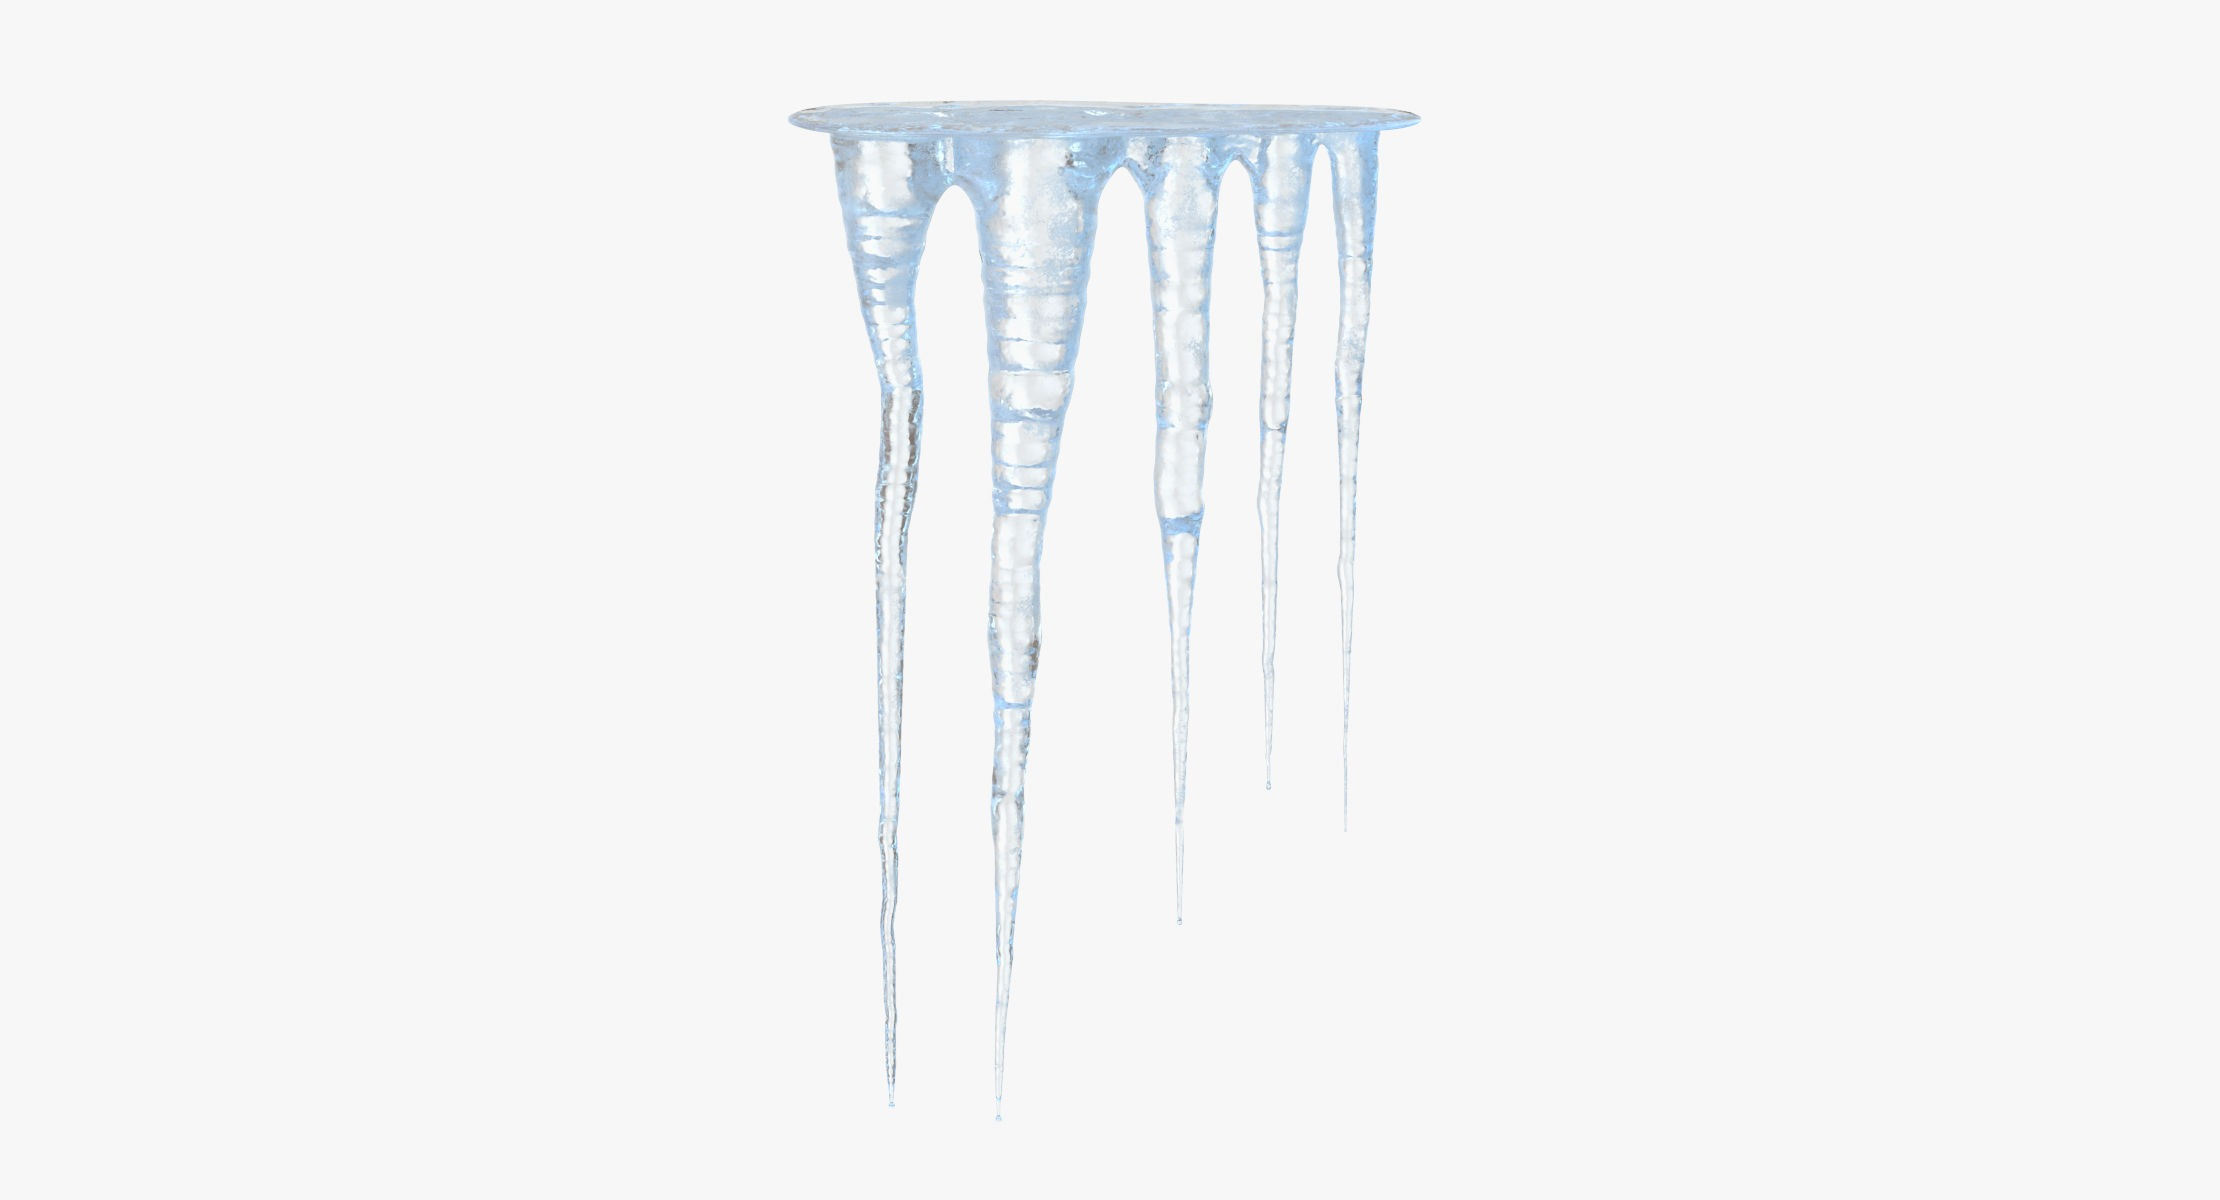 Icicles 03 - reel 1